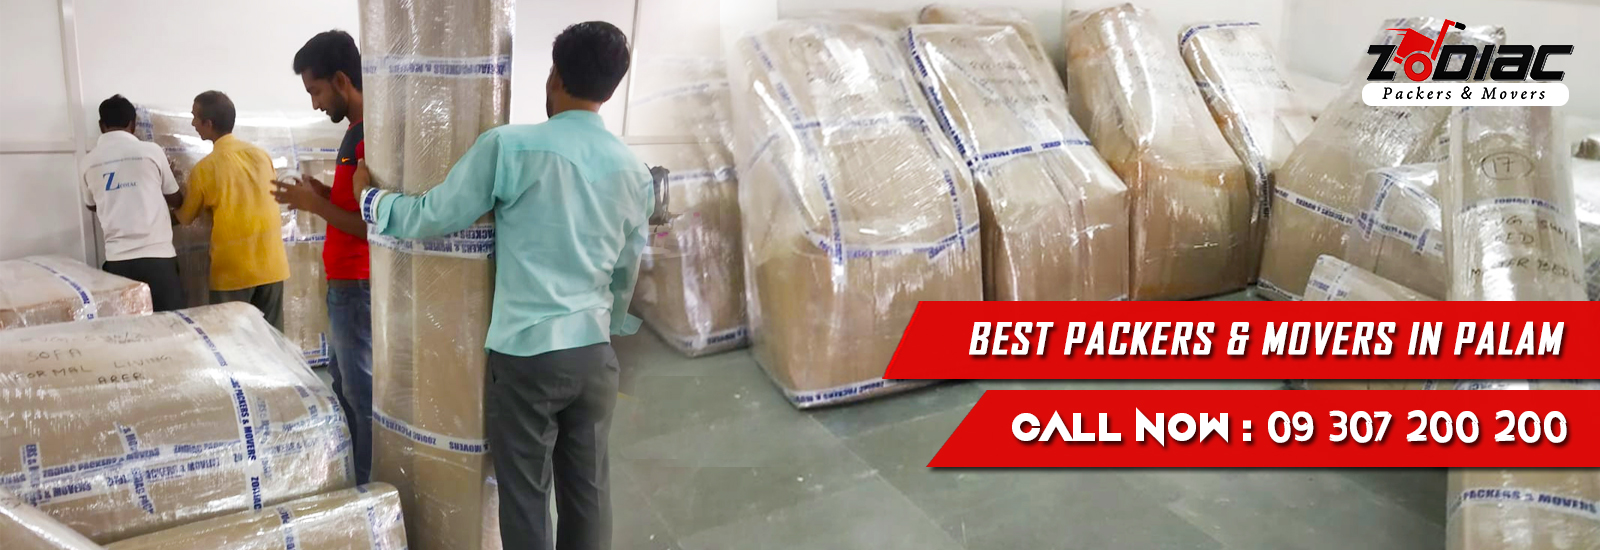 Packers and Movers in Palam